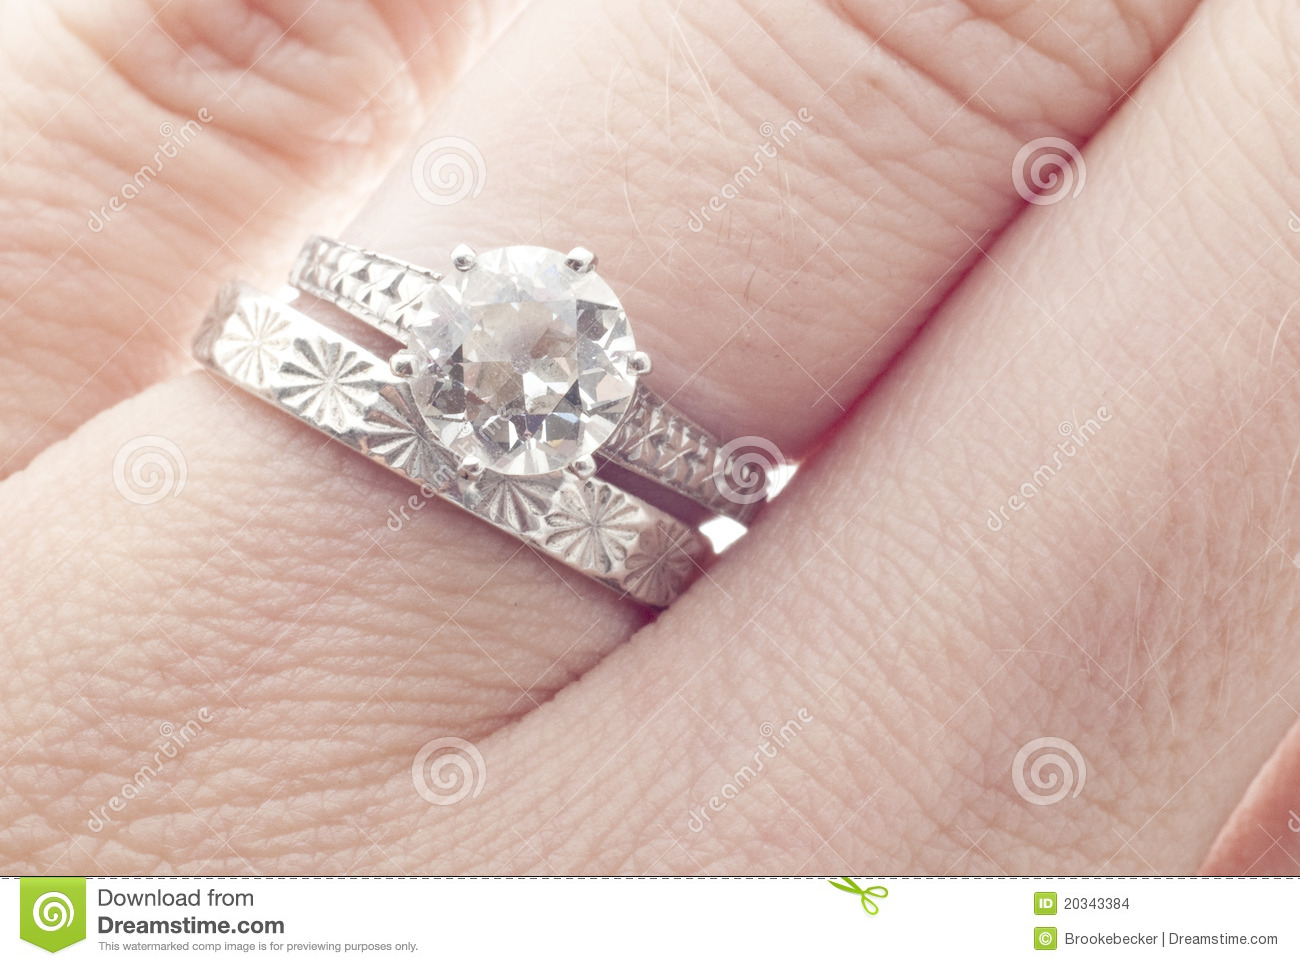 Antique Diamond Wedding Ring And Band On Finger Stock ...